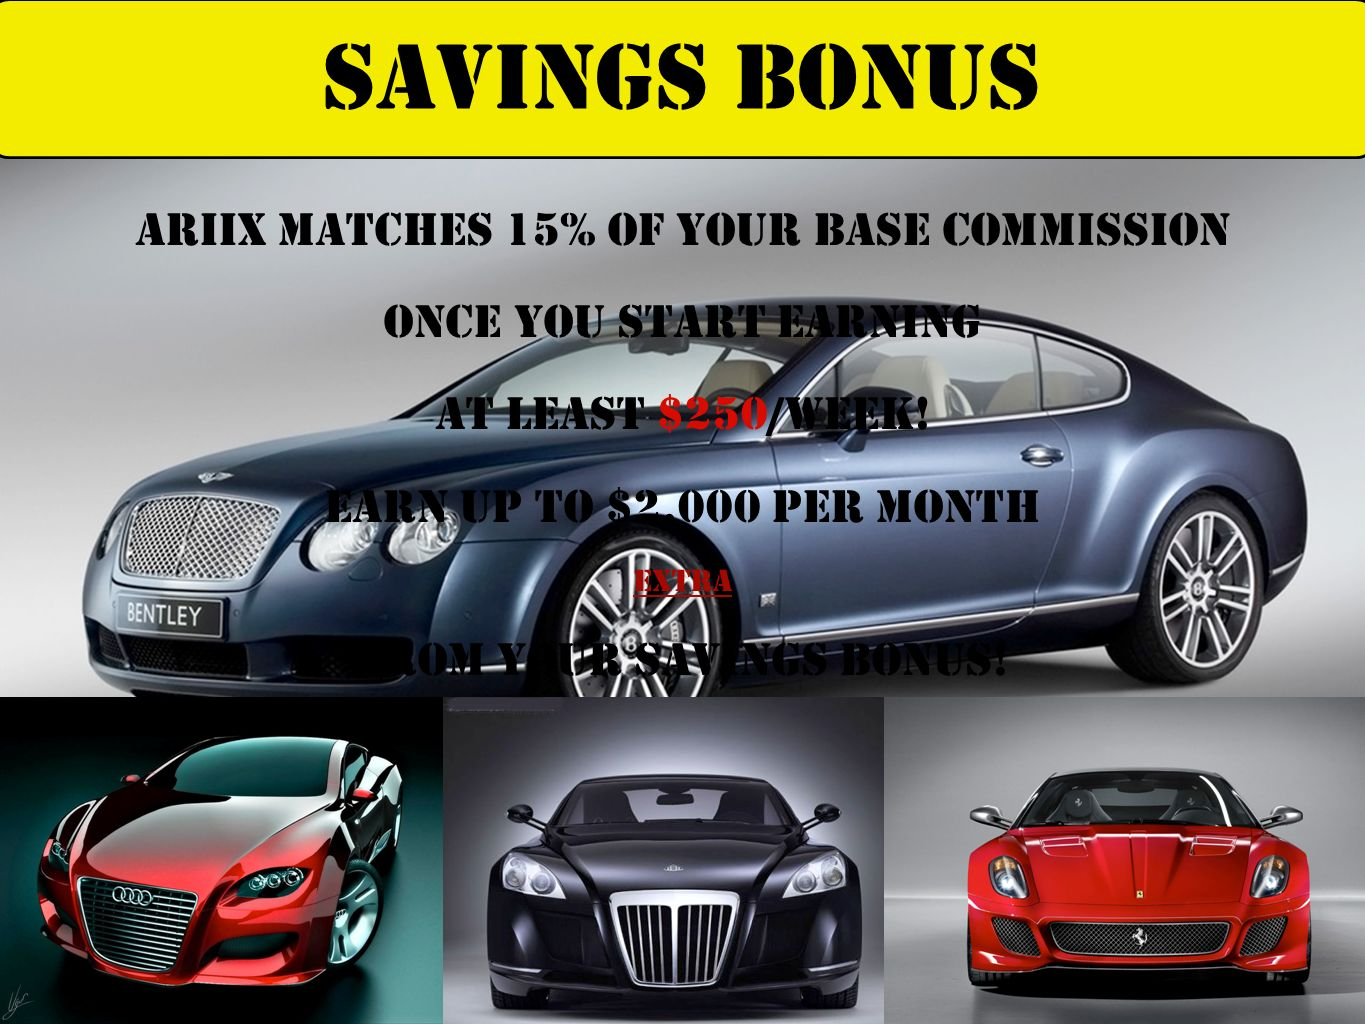 Savings BONUS ARIIX Matches 15% OF YOUR BASE COMMISSION